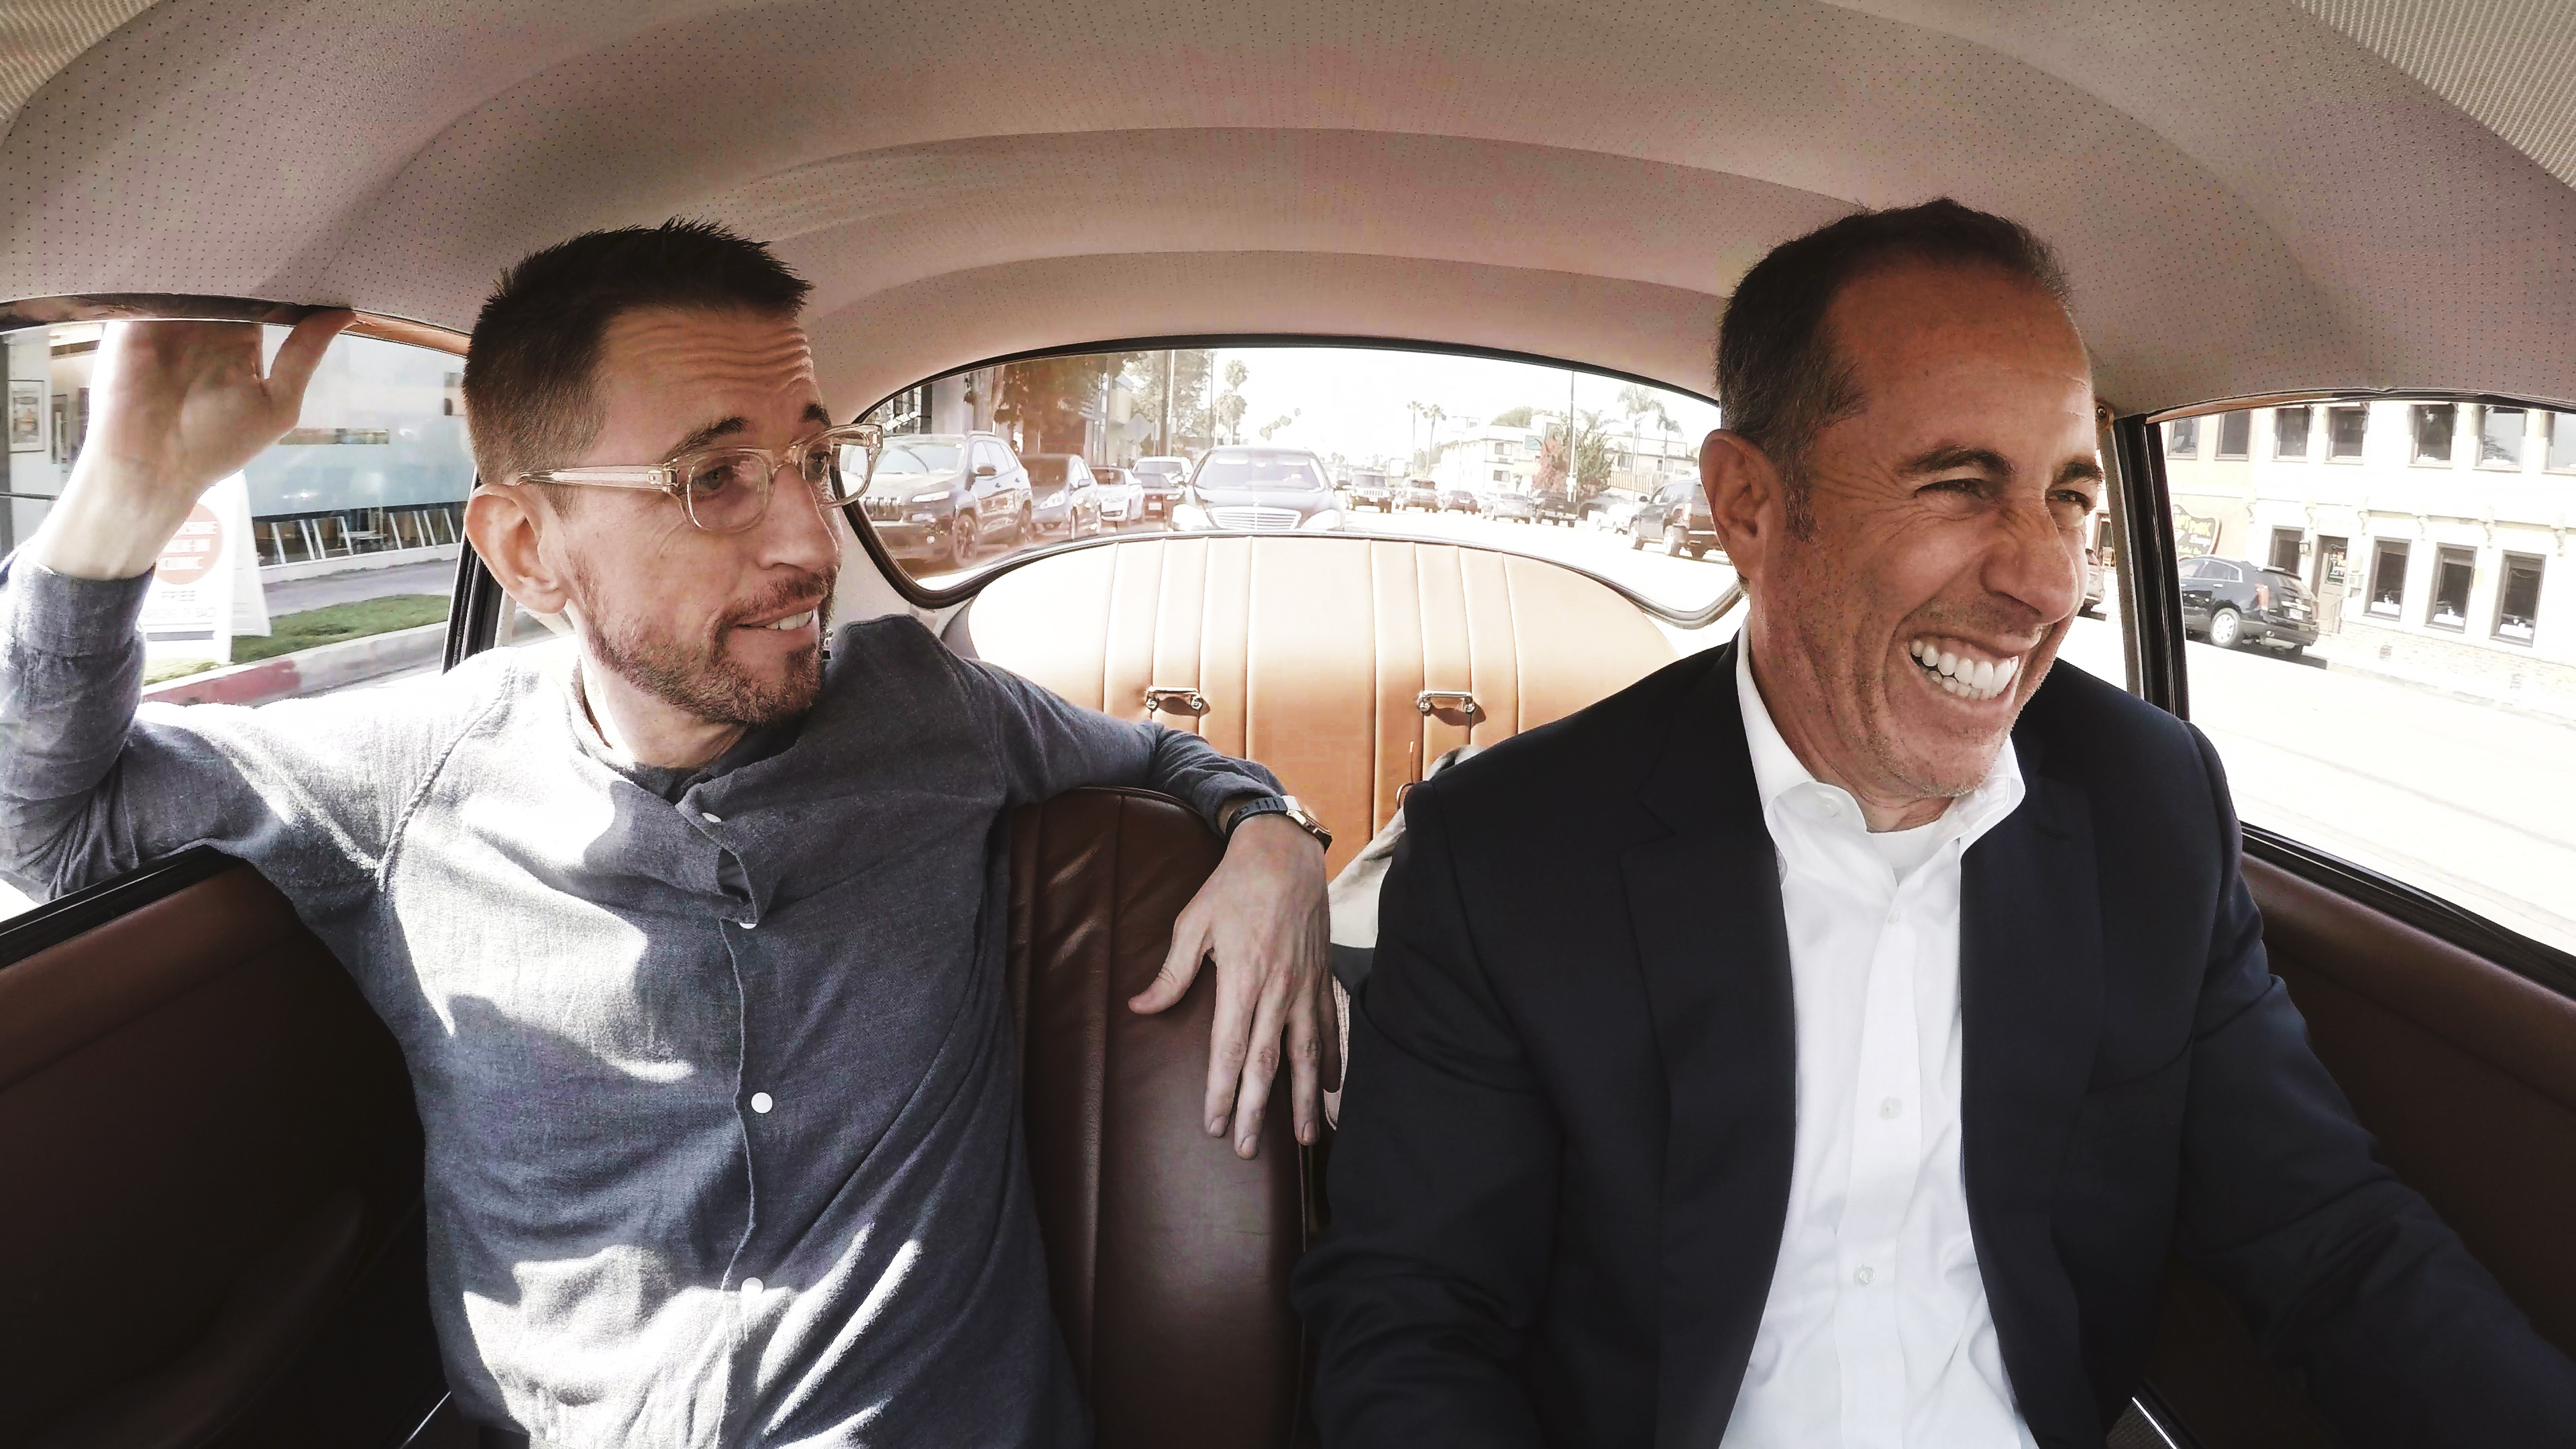 comedians in cars getting coffee on netflix the best new episodes indiewire. Black Bedroom Furniture Sets. Home Design Ideas